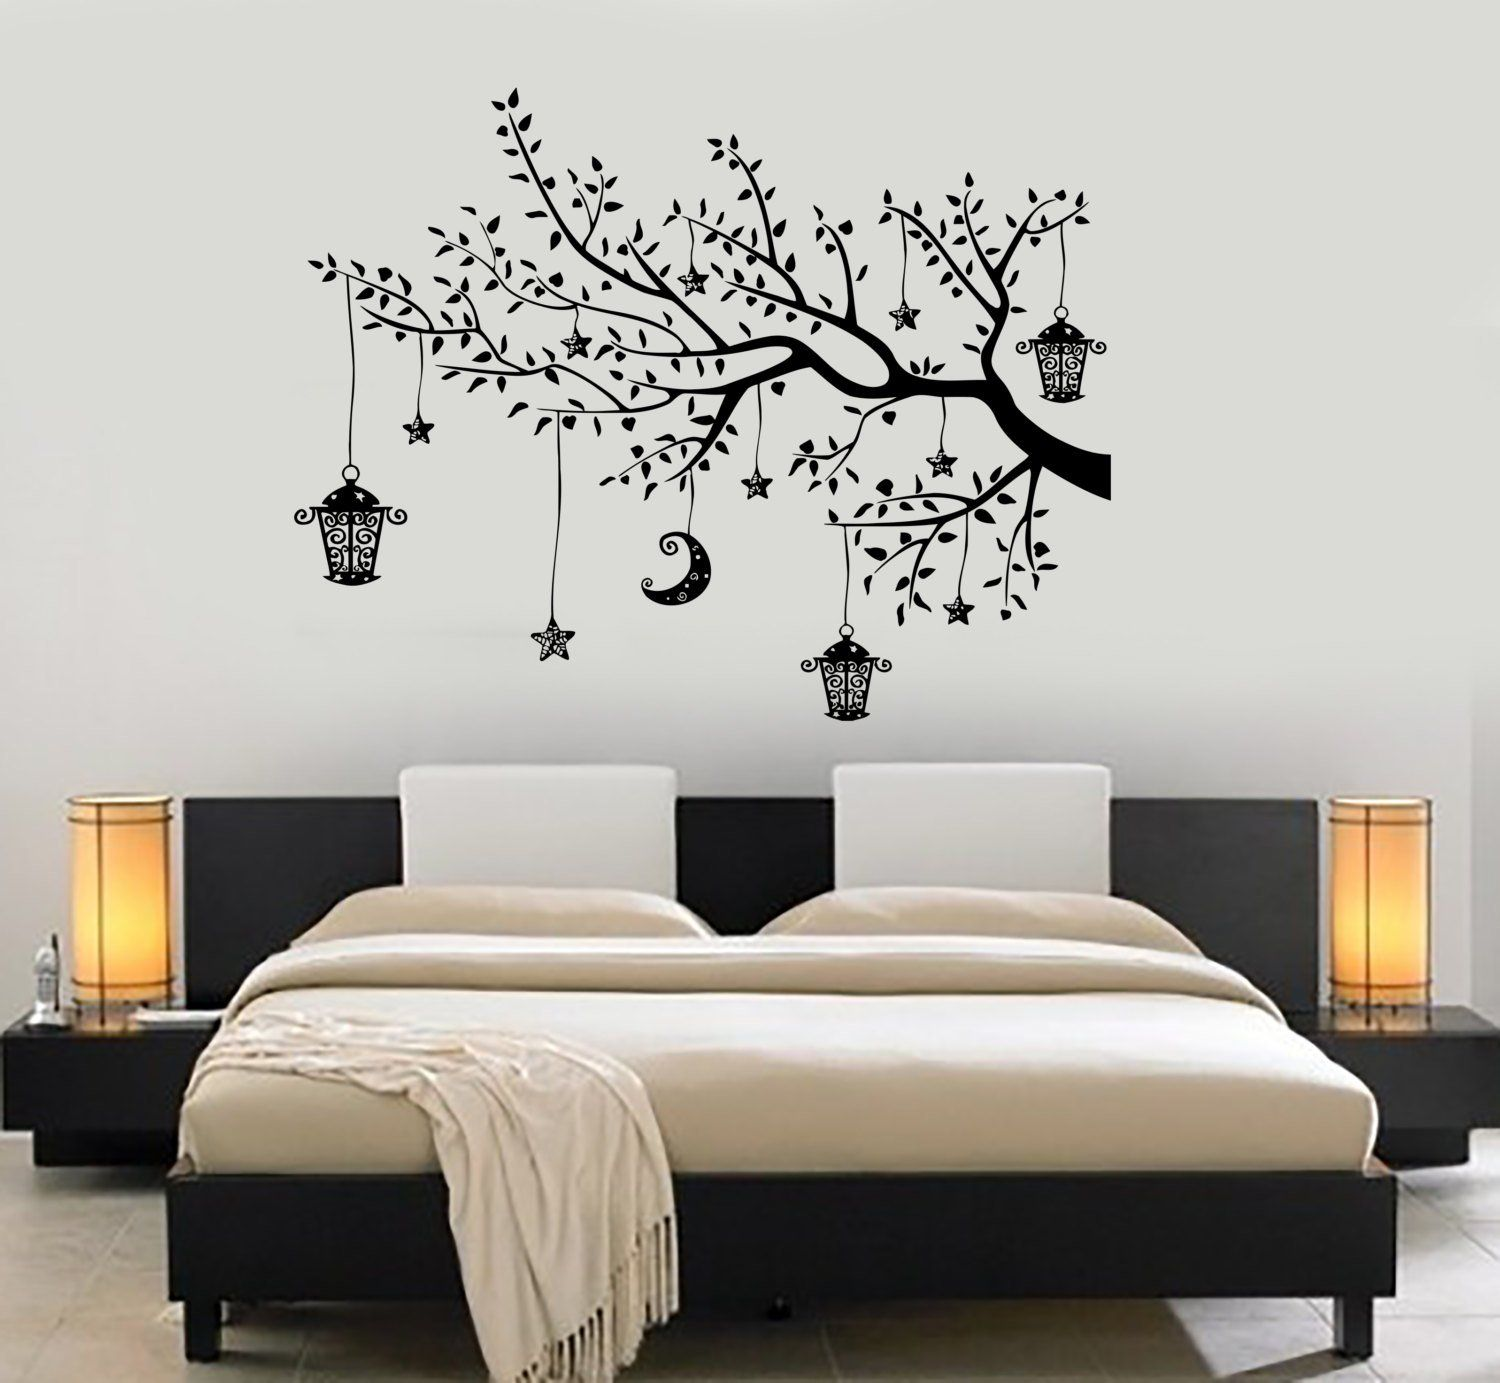 Wall Decal Branch Tree Moon Lantern For Bedroom Vinyl Sticker Etsy Bedroom Wall Designs Bedroom Wall Paint Wall Decal Branches